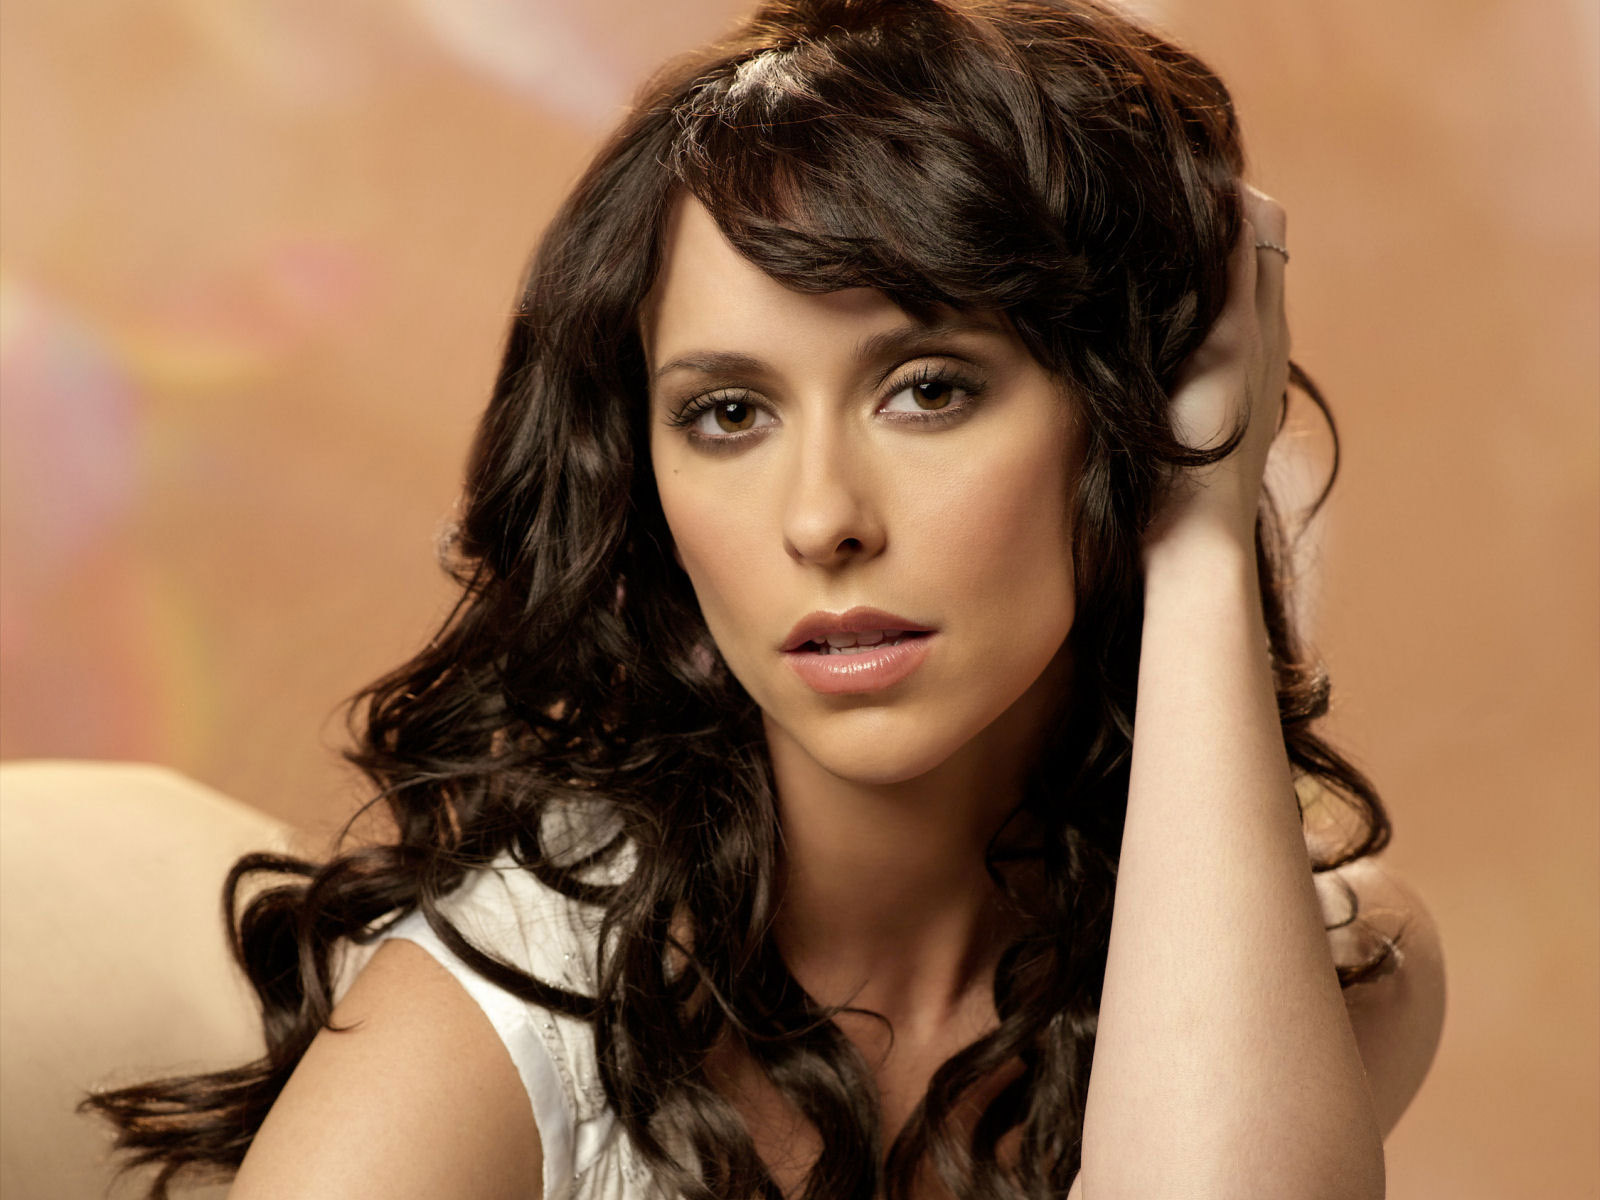 Wallpaper Hd Jennifer Love : Download Jennifer Love Hewitt 12471 1600x1200 px High Resolution Wallpaper - HDWallSource.com